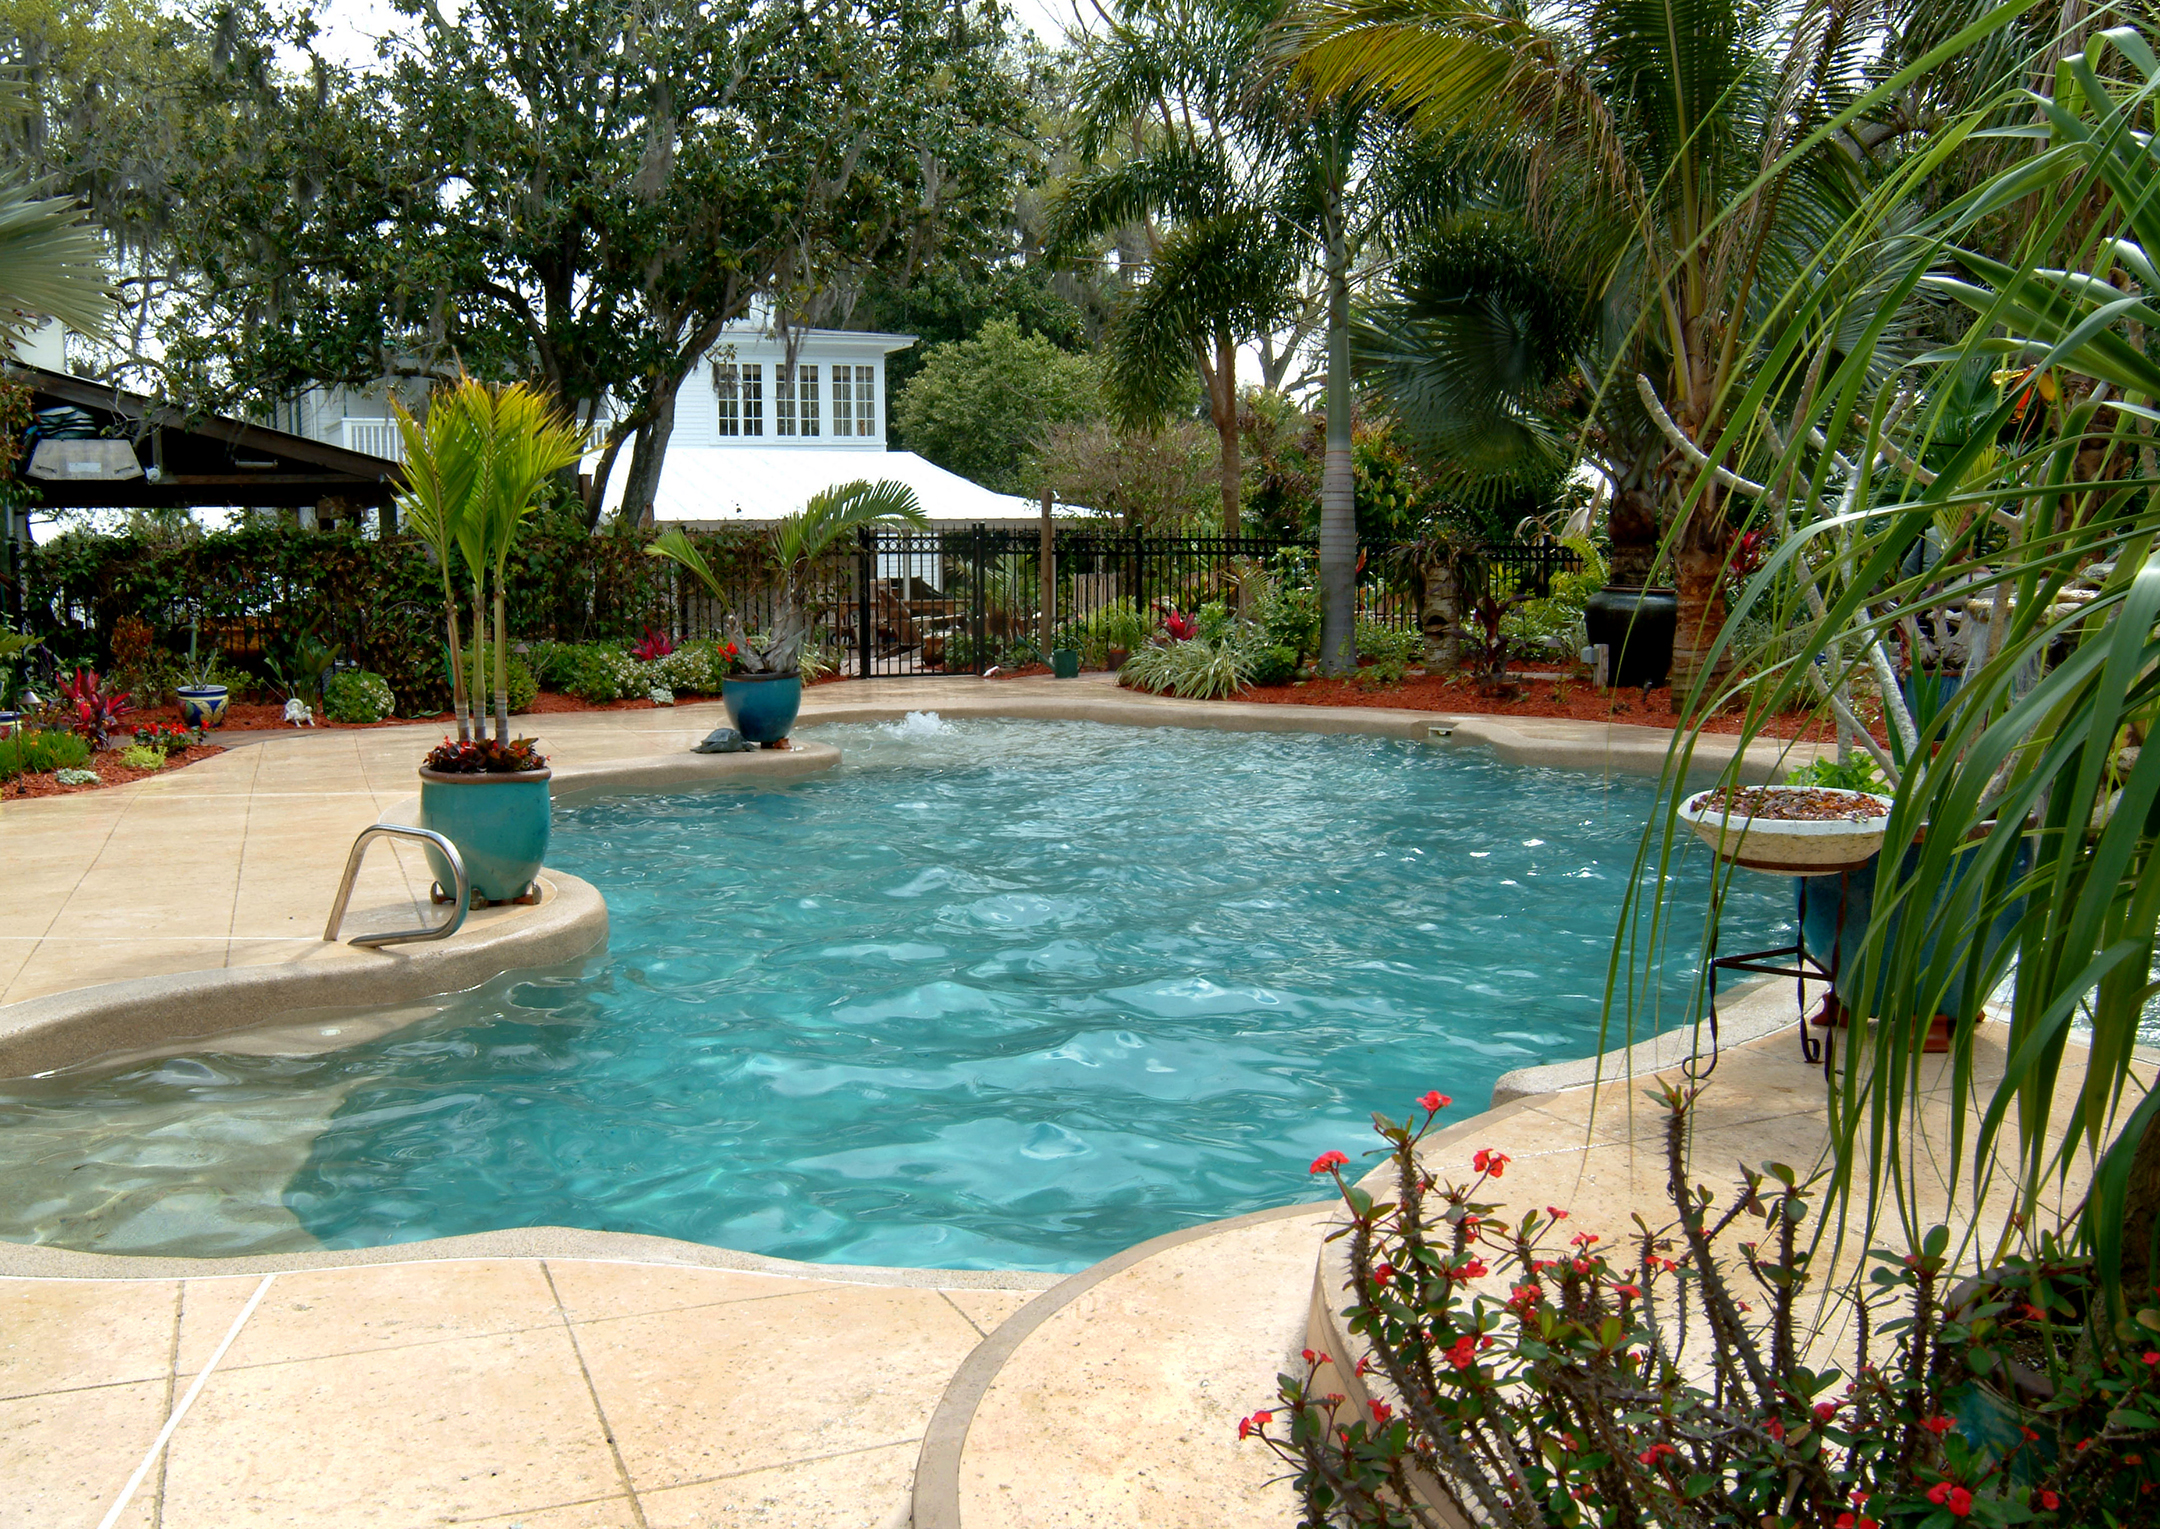 Pool and patio